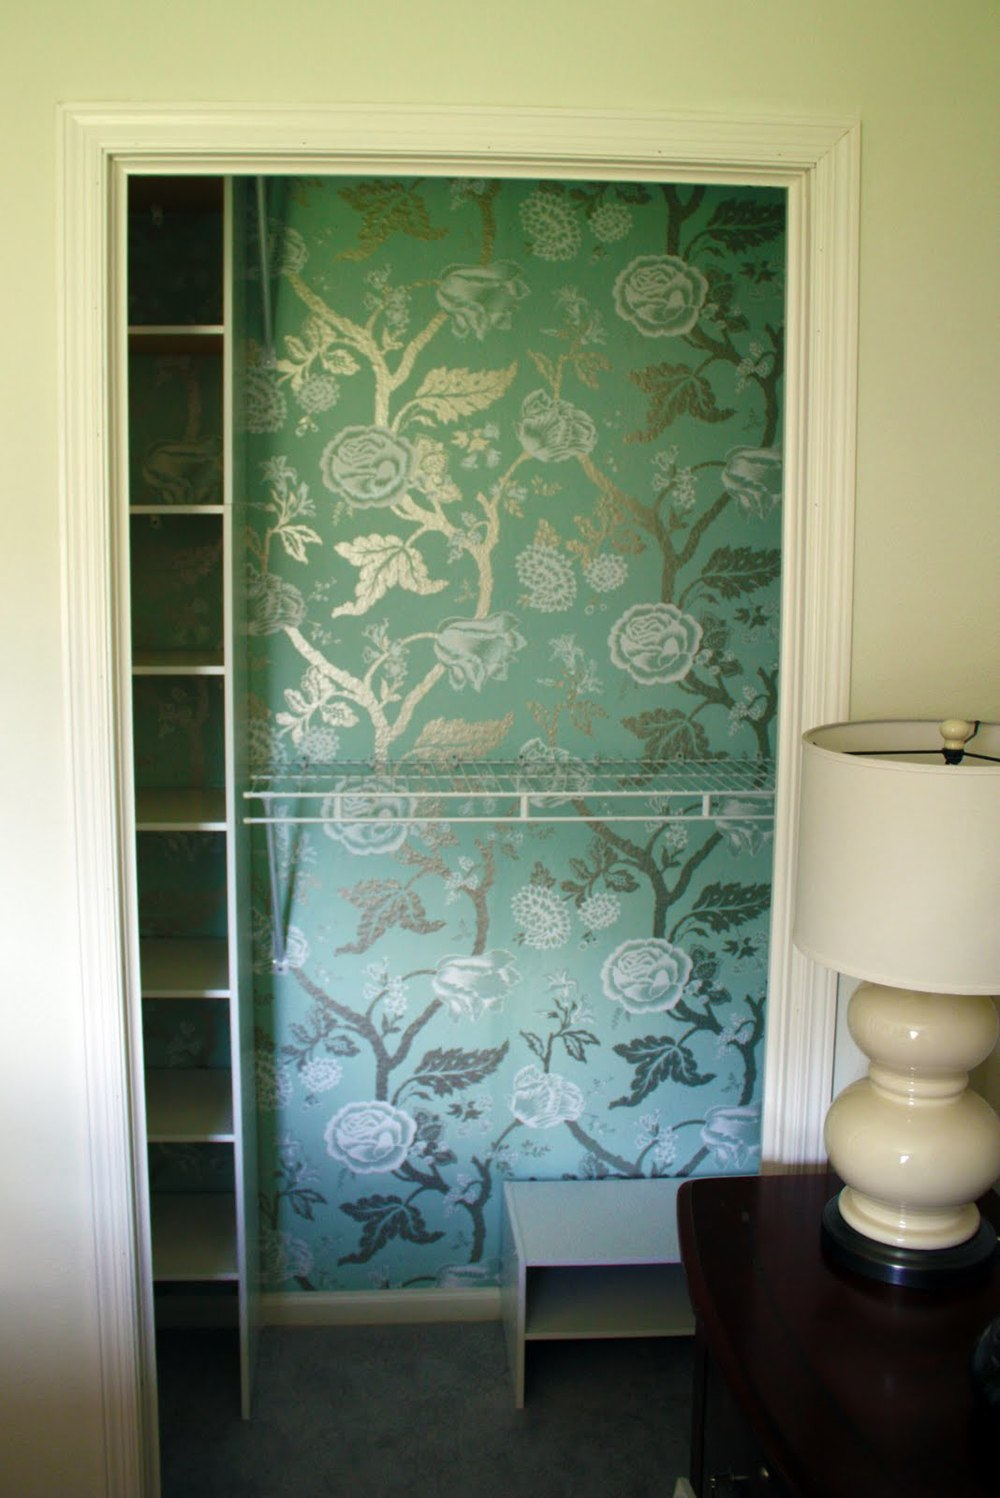 Wallpaper is an excellent, mess-free alternative to paint! (Photo Credit: iheartorganizing blog)